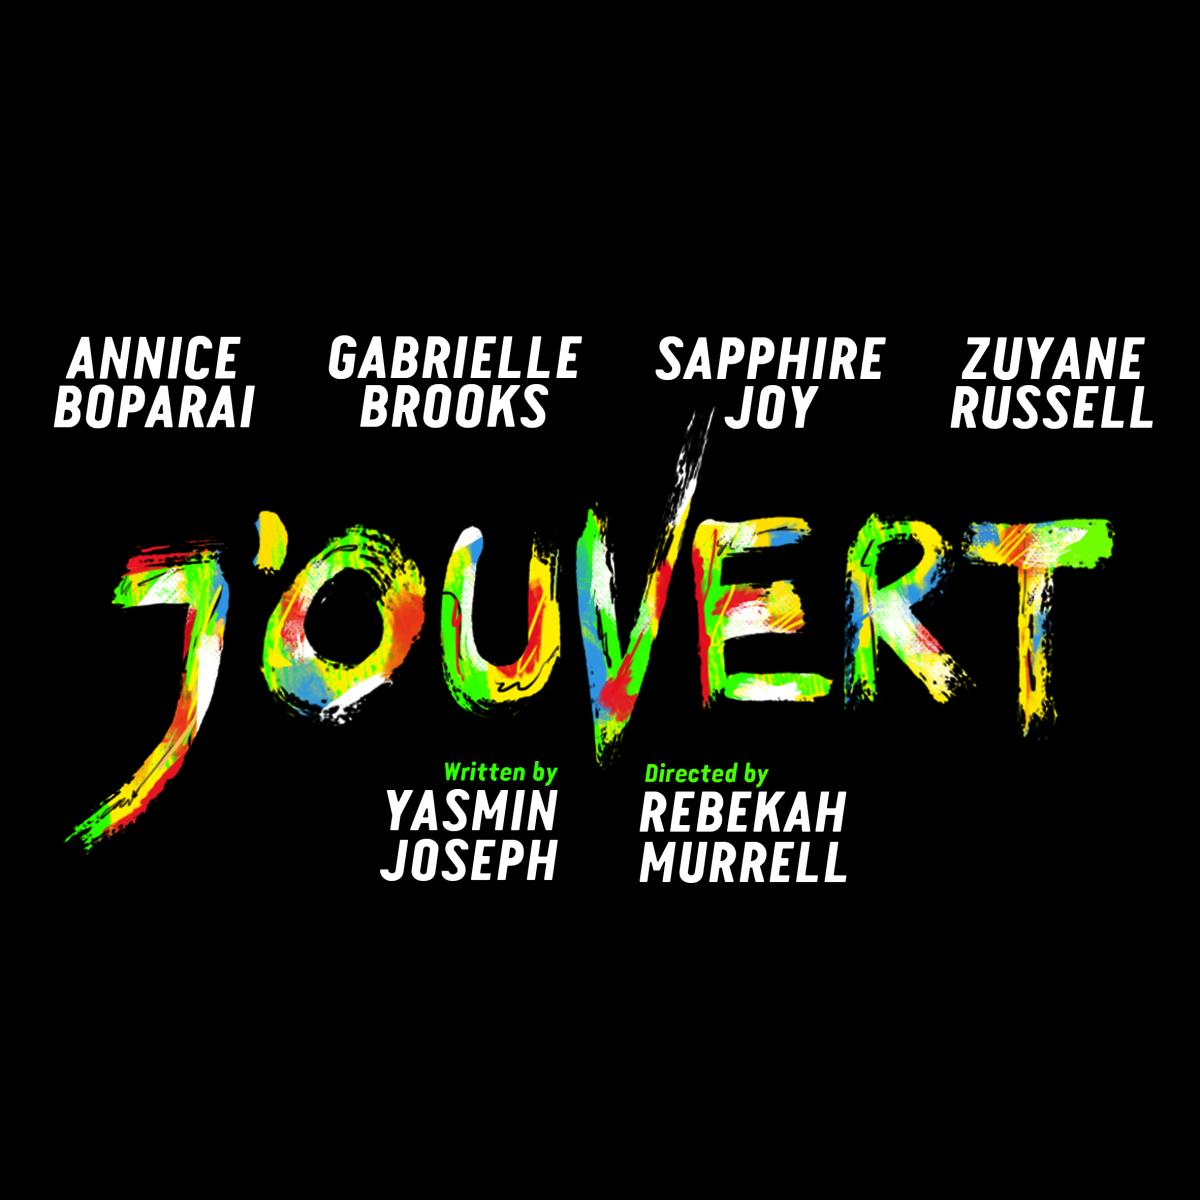 J'Ouvert will be broadcast as part of BBC's Lights Up Season